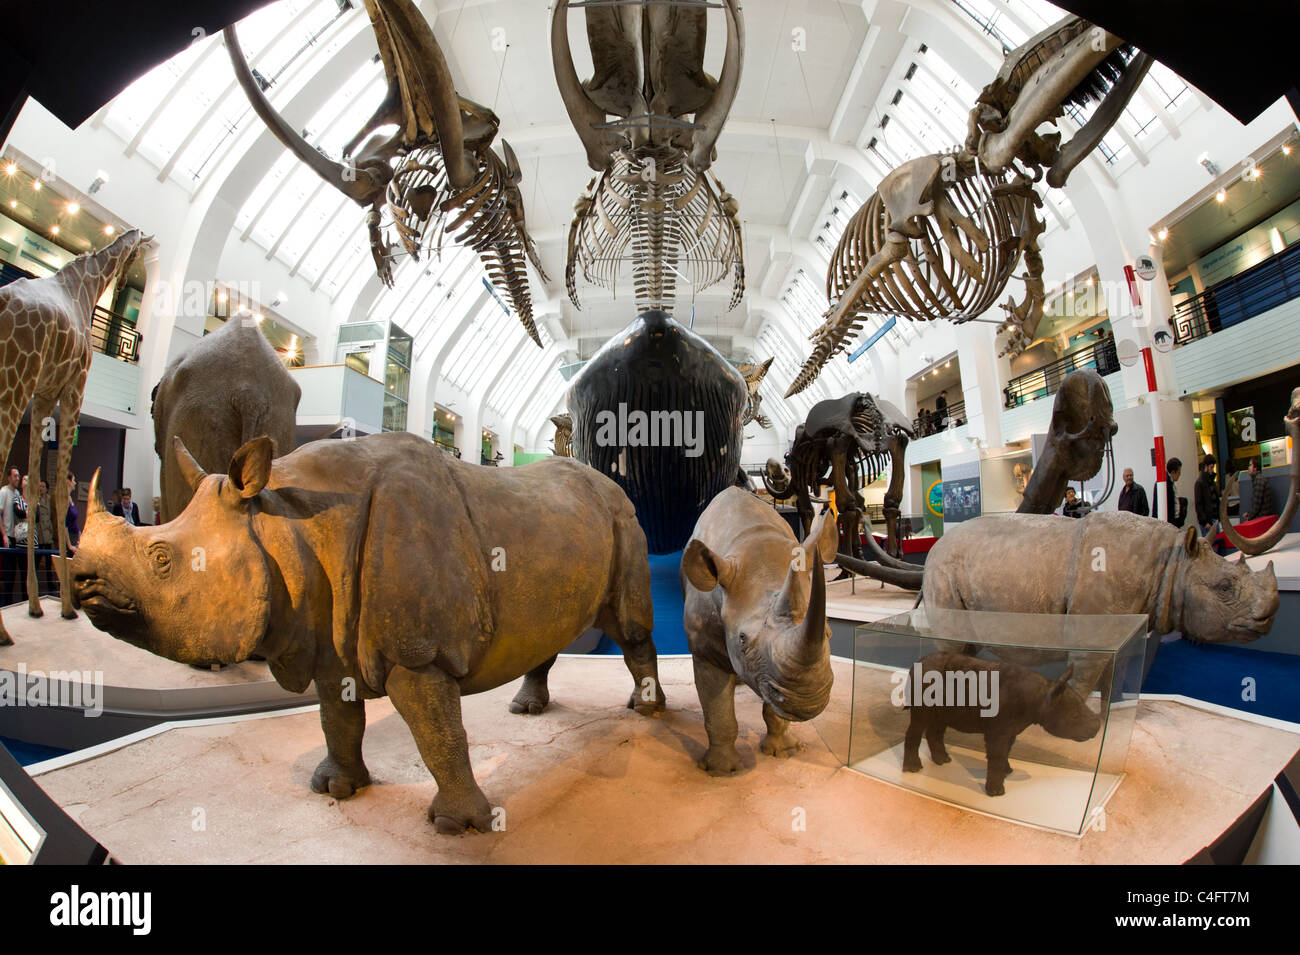 Life-size models of mammals in the Natural History Museum, London, UK - Stock Image